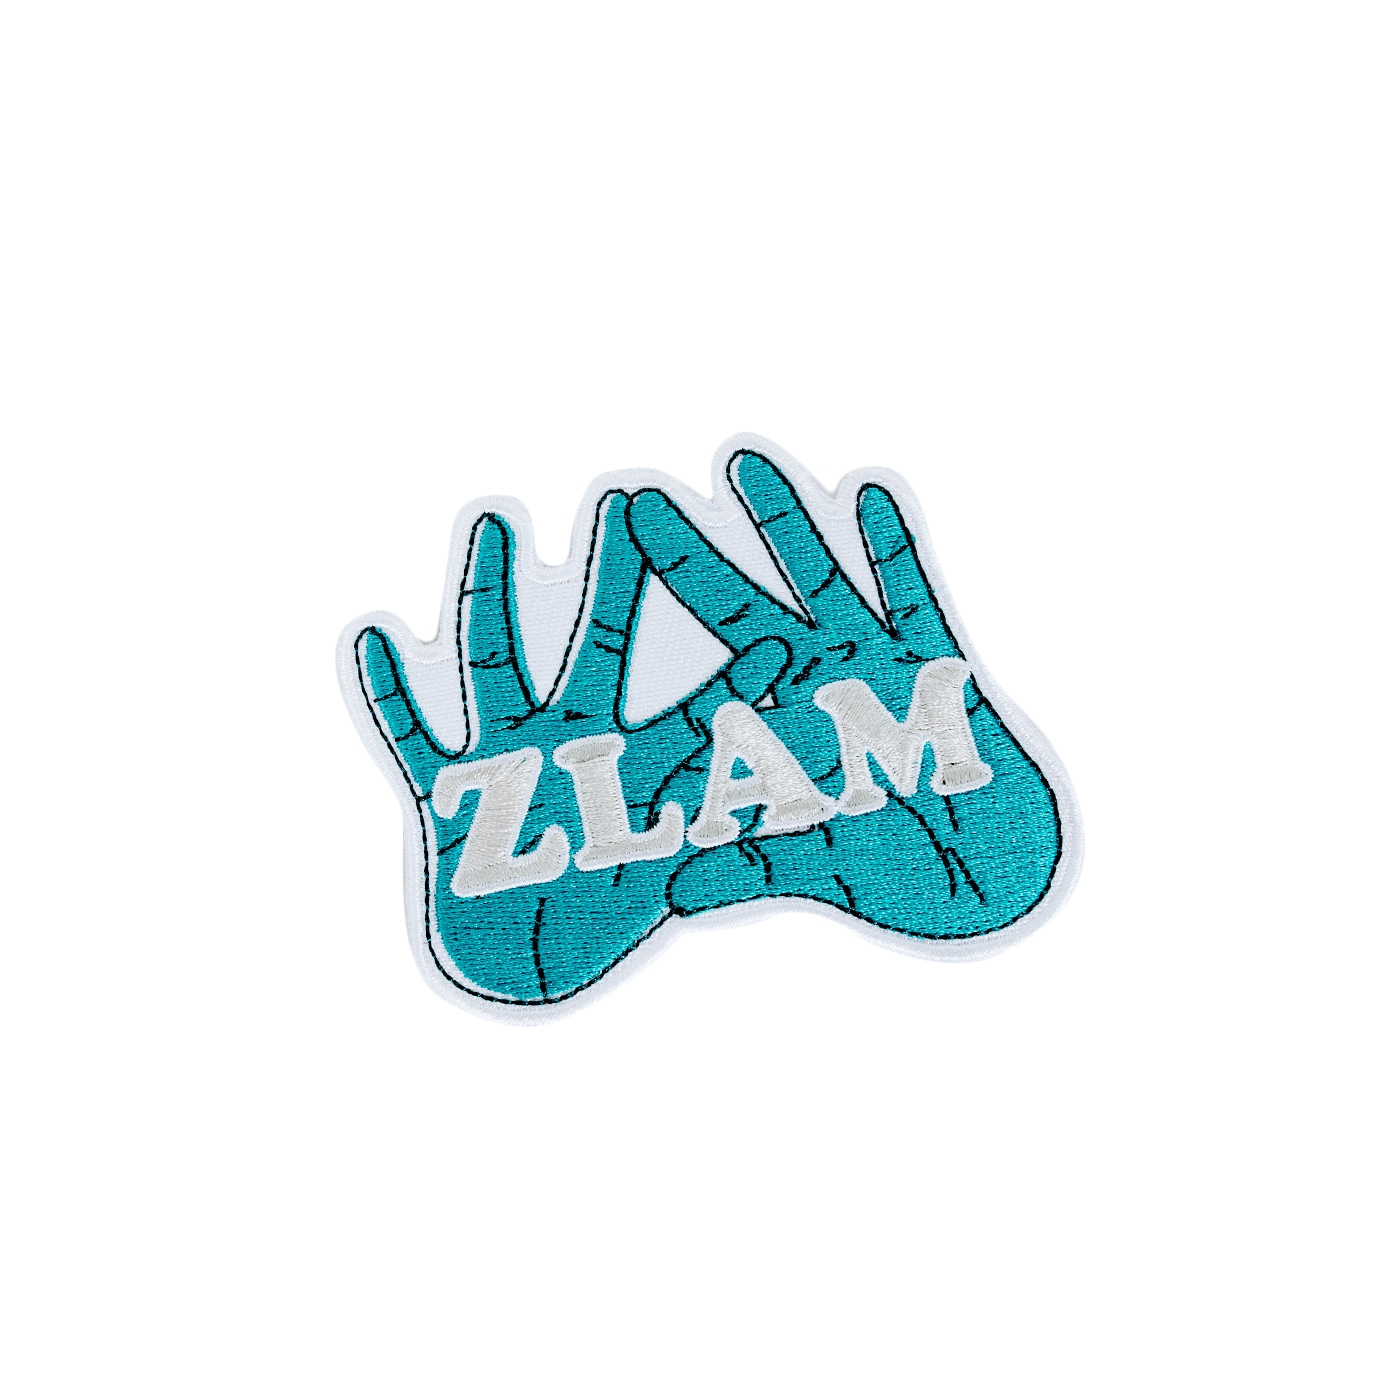 ZLAM Embroidered Patch